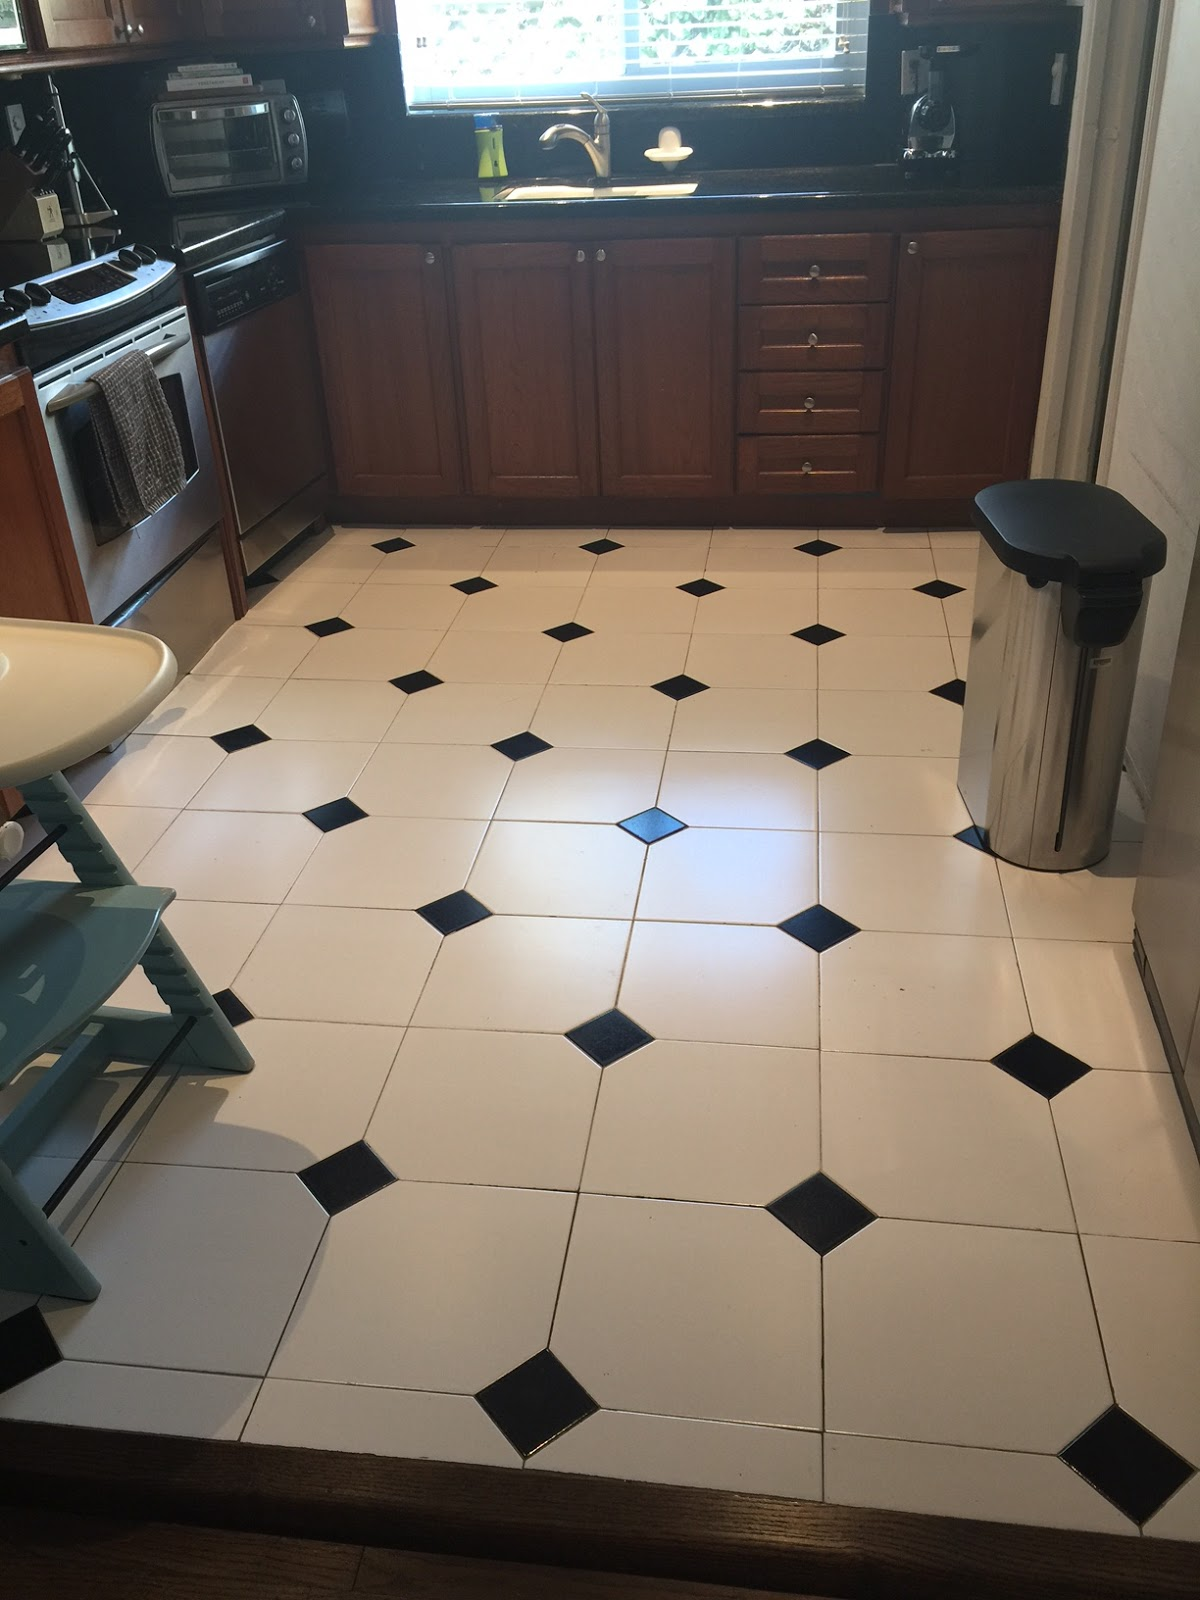 Home Decor Kitchen Makeover Reveal With Lowes Viva Fashion 4 Way Switch At The Second Most Drastic Change Aside From White Cabinets Was Floor They Have Such A Wide Selection It Hard To Narrow Down